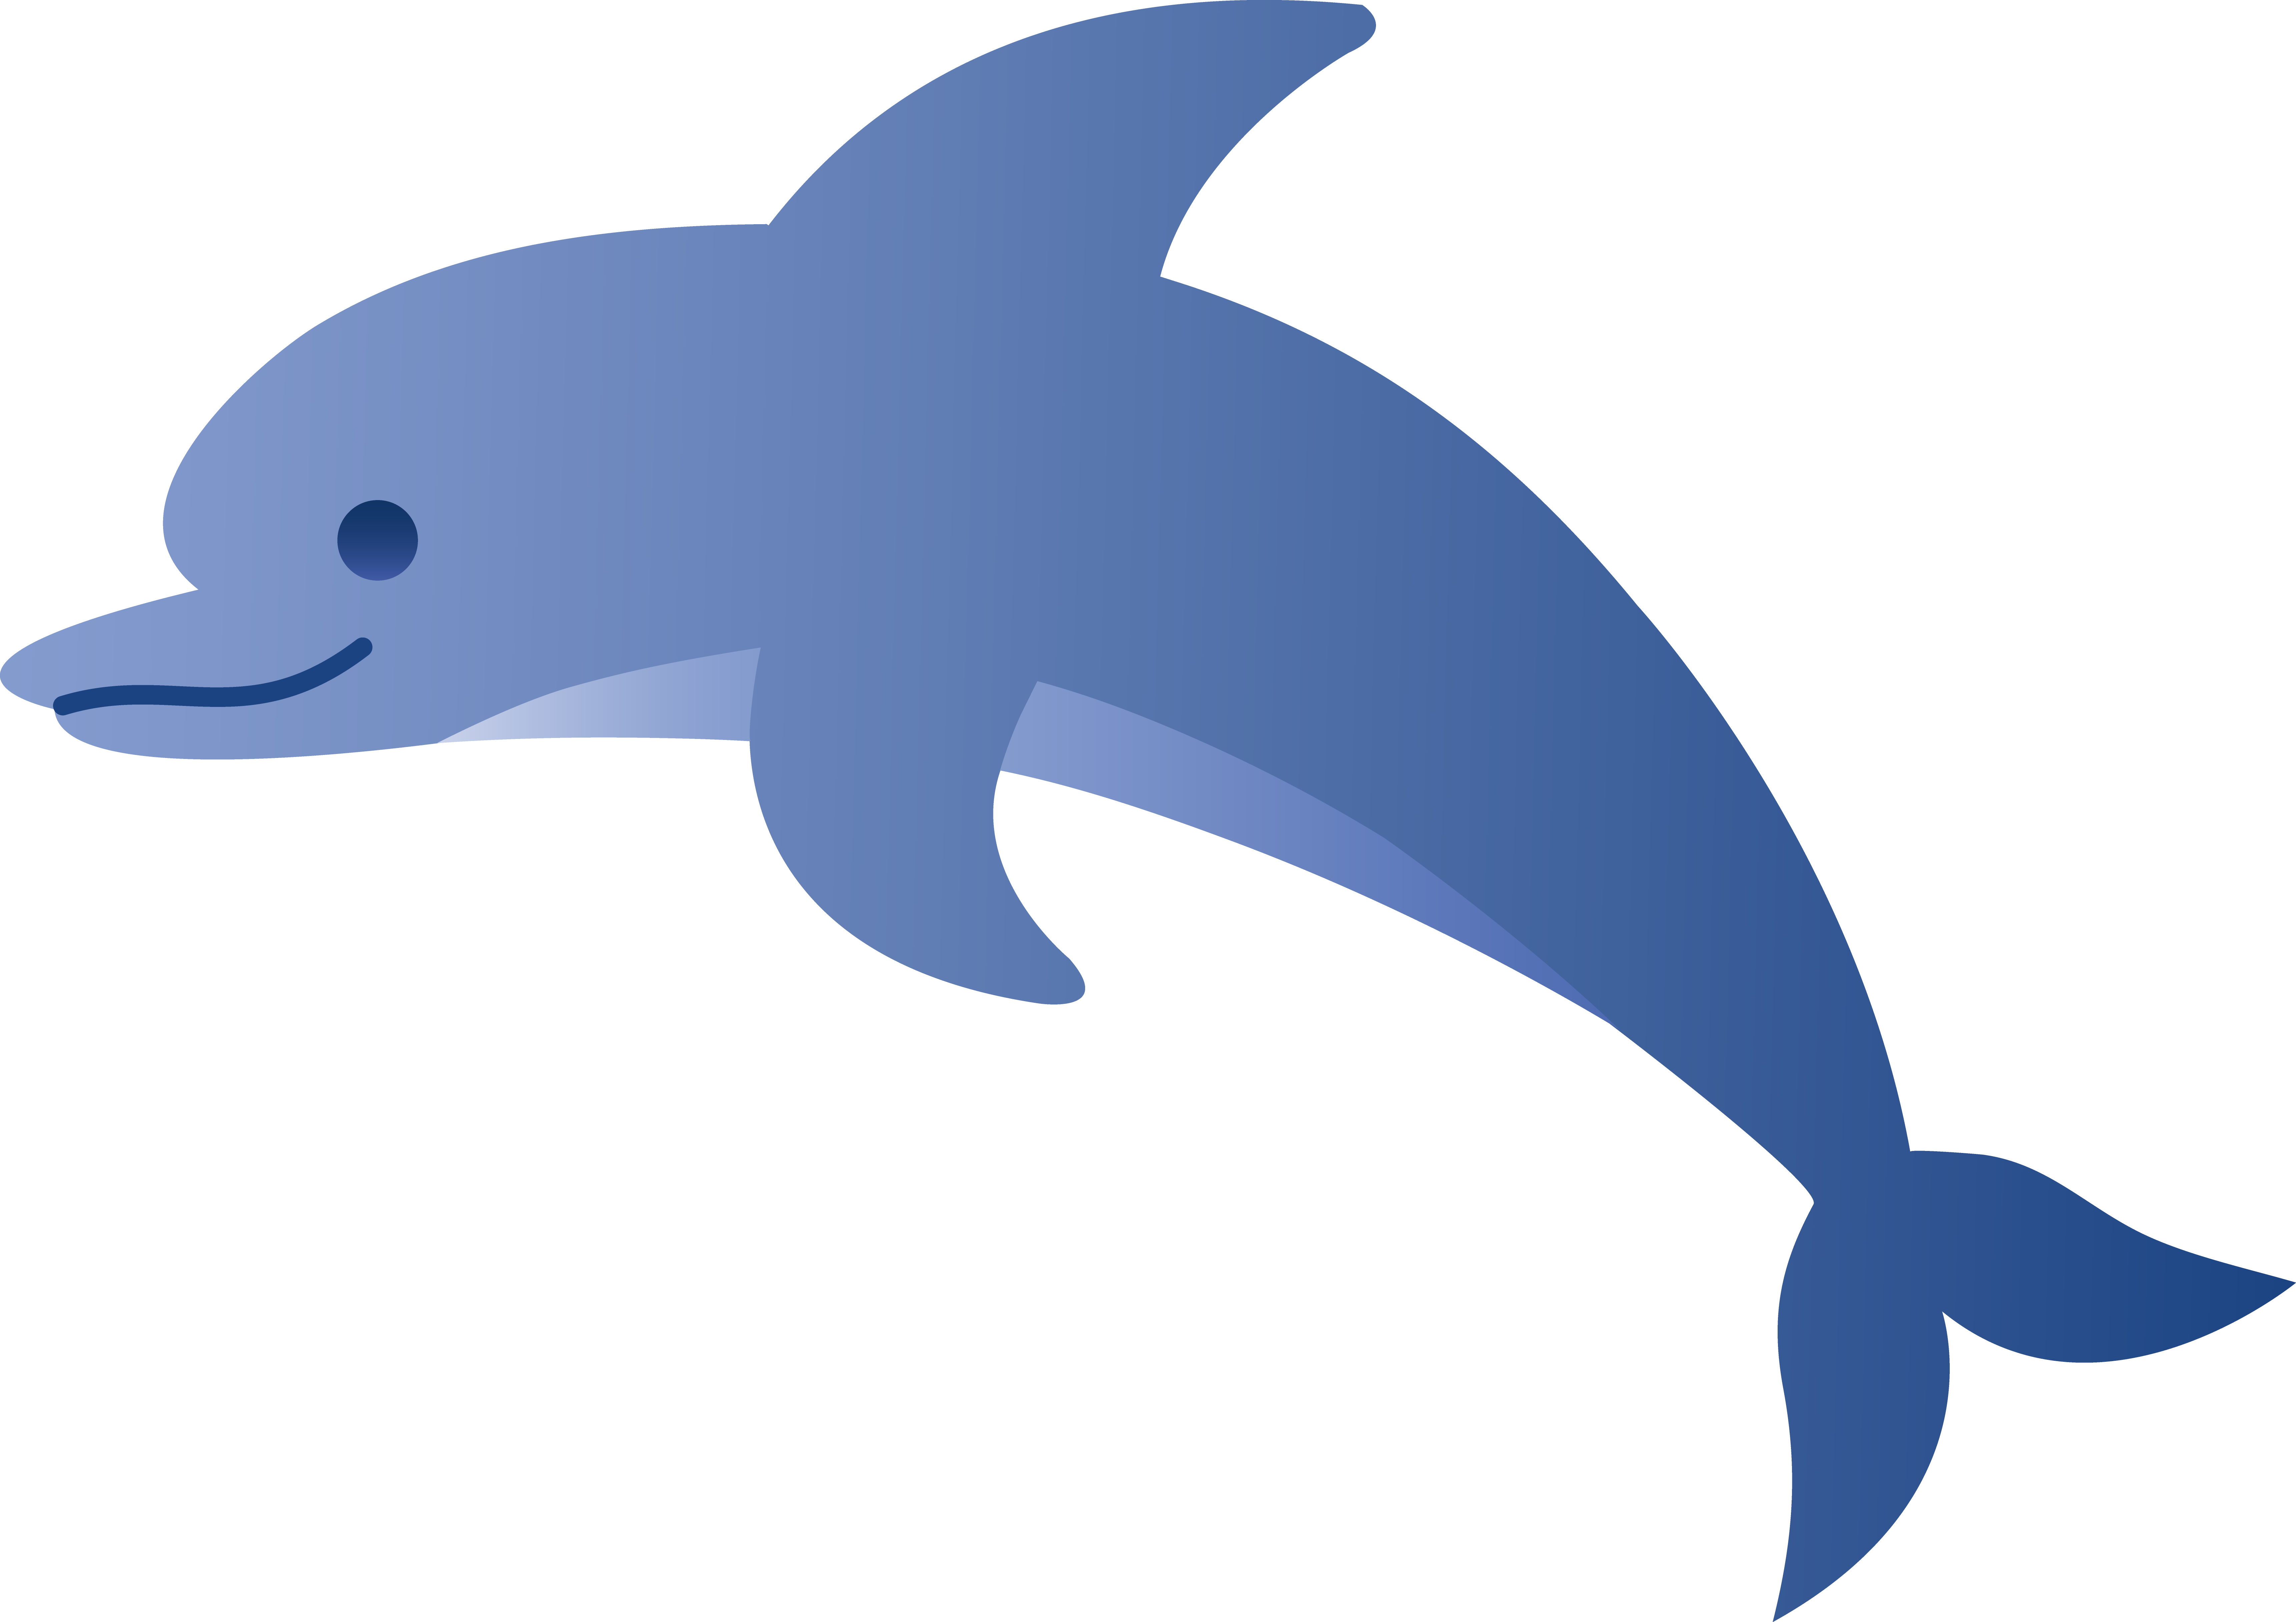 Cartoon Dolphin Images Free Download Best Cartoon Dolphin Images